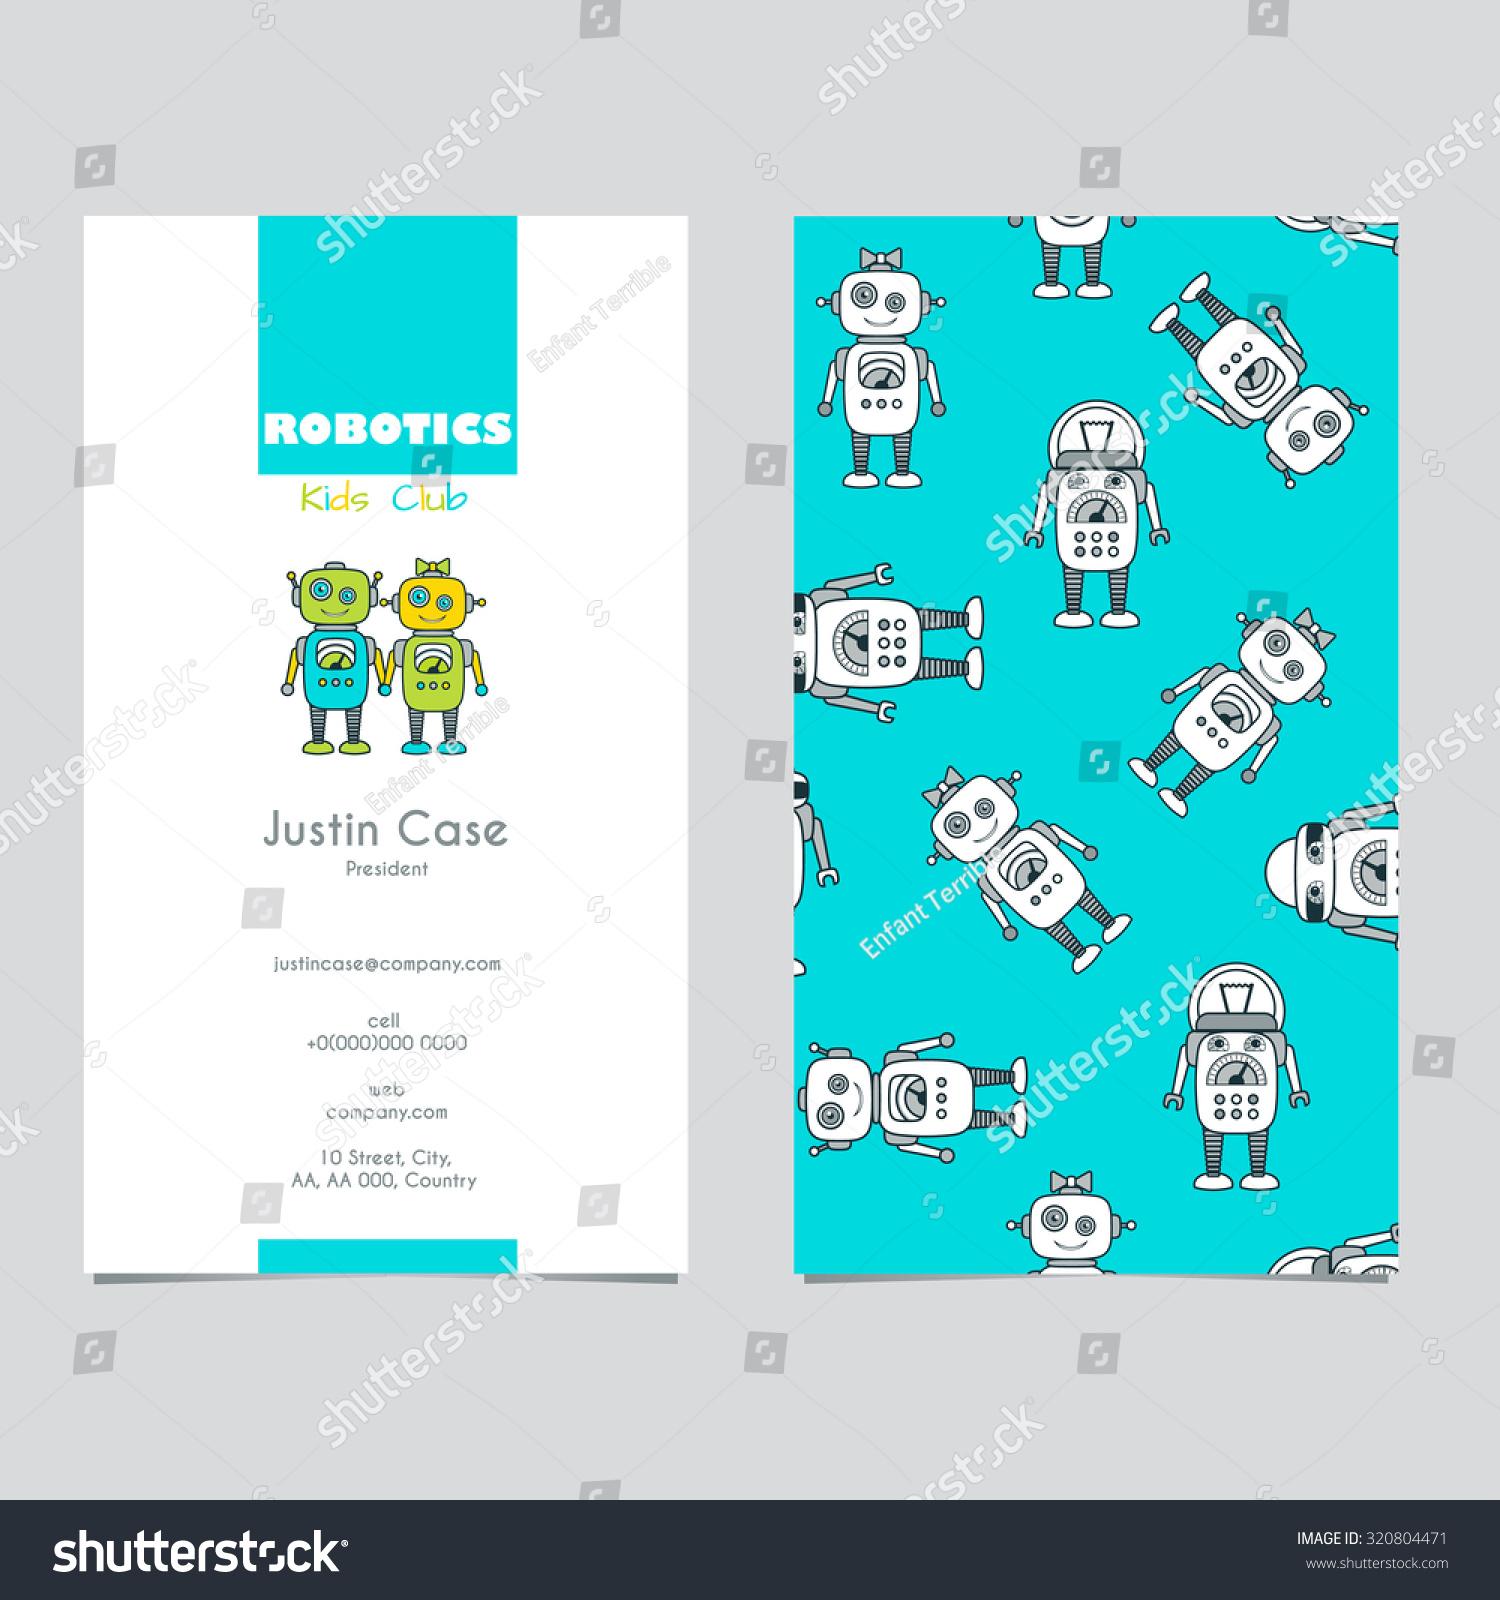 cute robot cartoon character educational flat icon business card template school after. Black Bedroom Furniture Sets. Home Design Ideas